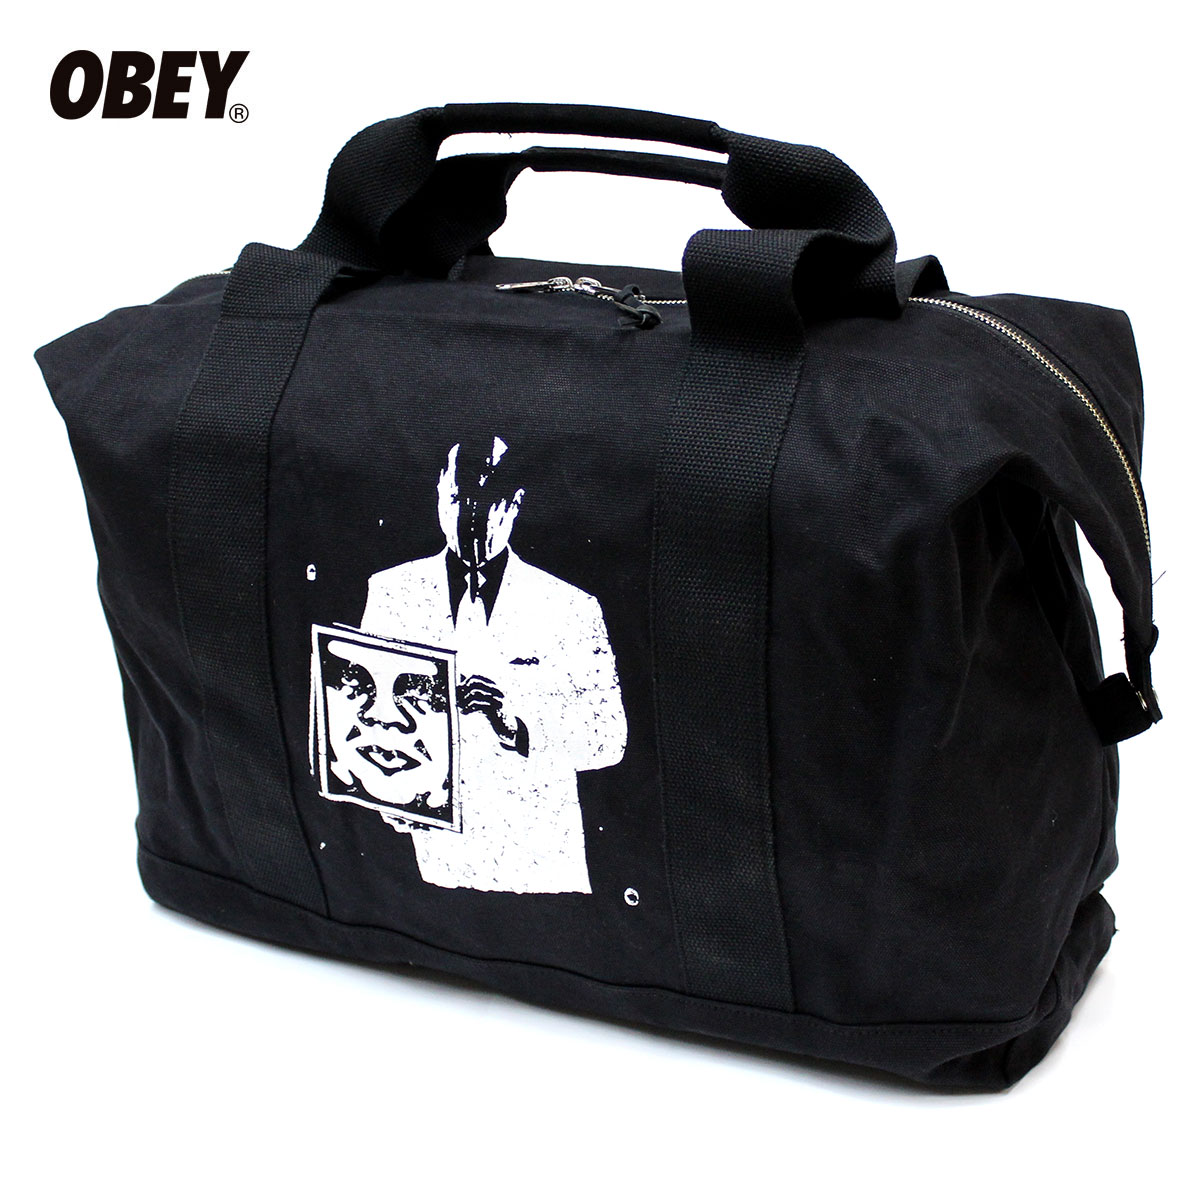 OBEY (obey) CORPORATE VIOLENCE WEEKENDER [large tote bags travel bags bag BRIXTON Brixton HUF Huff]